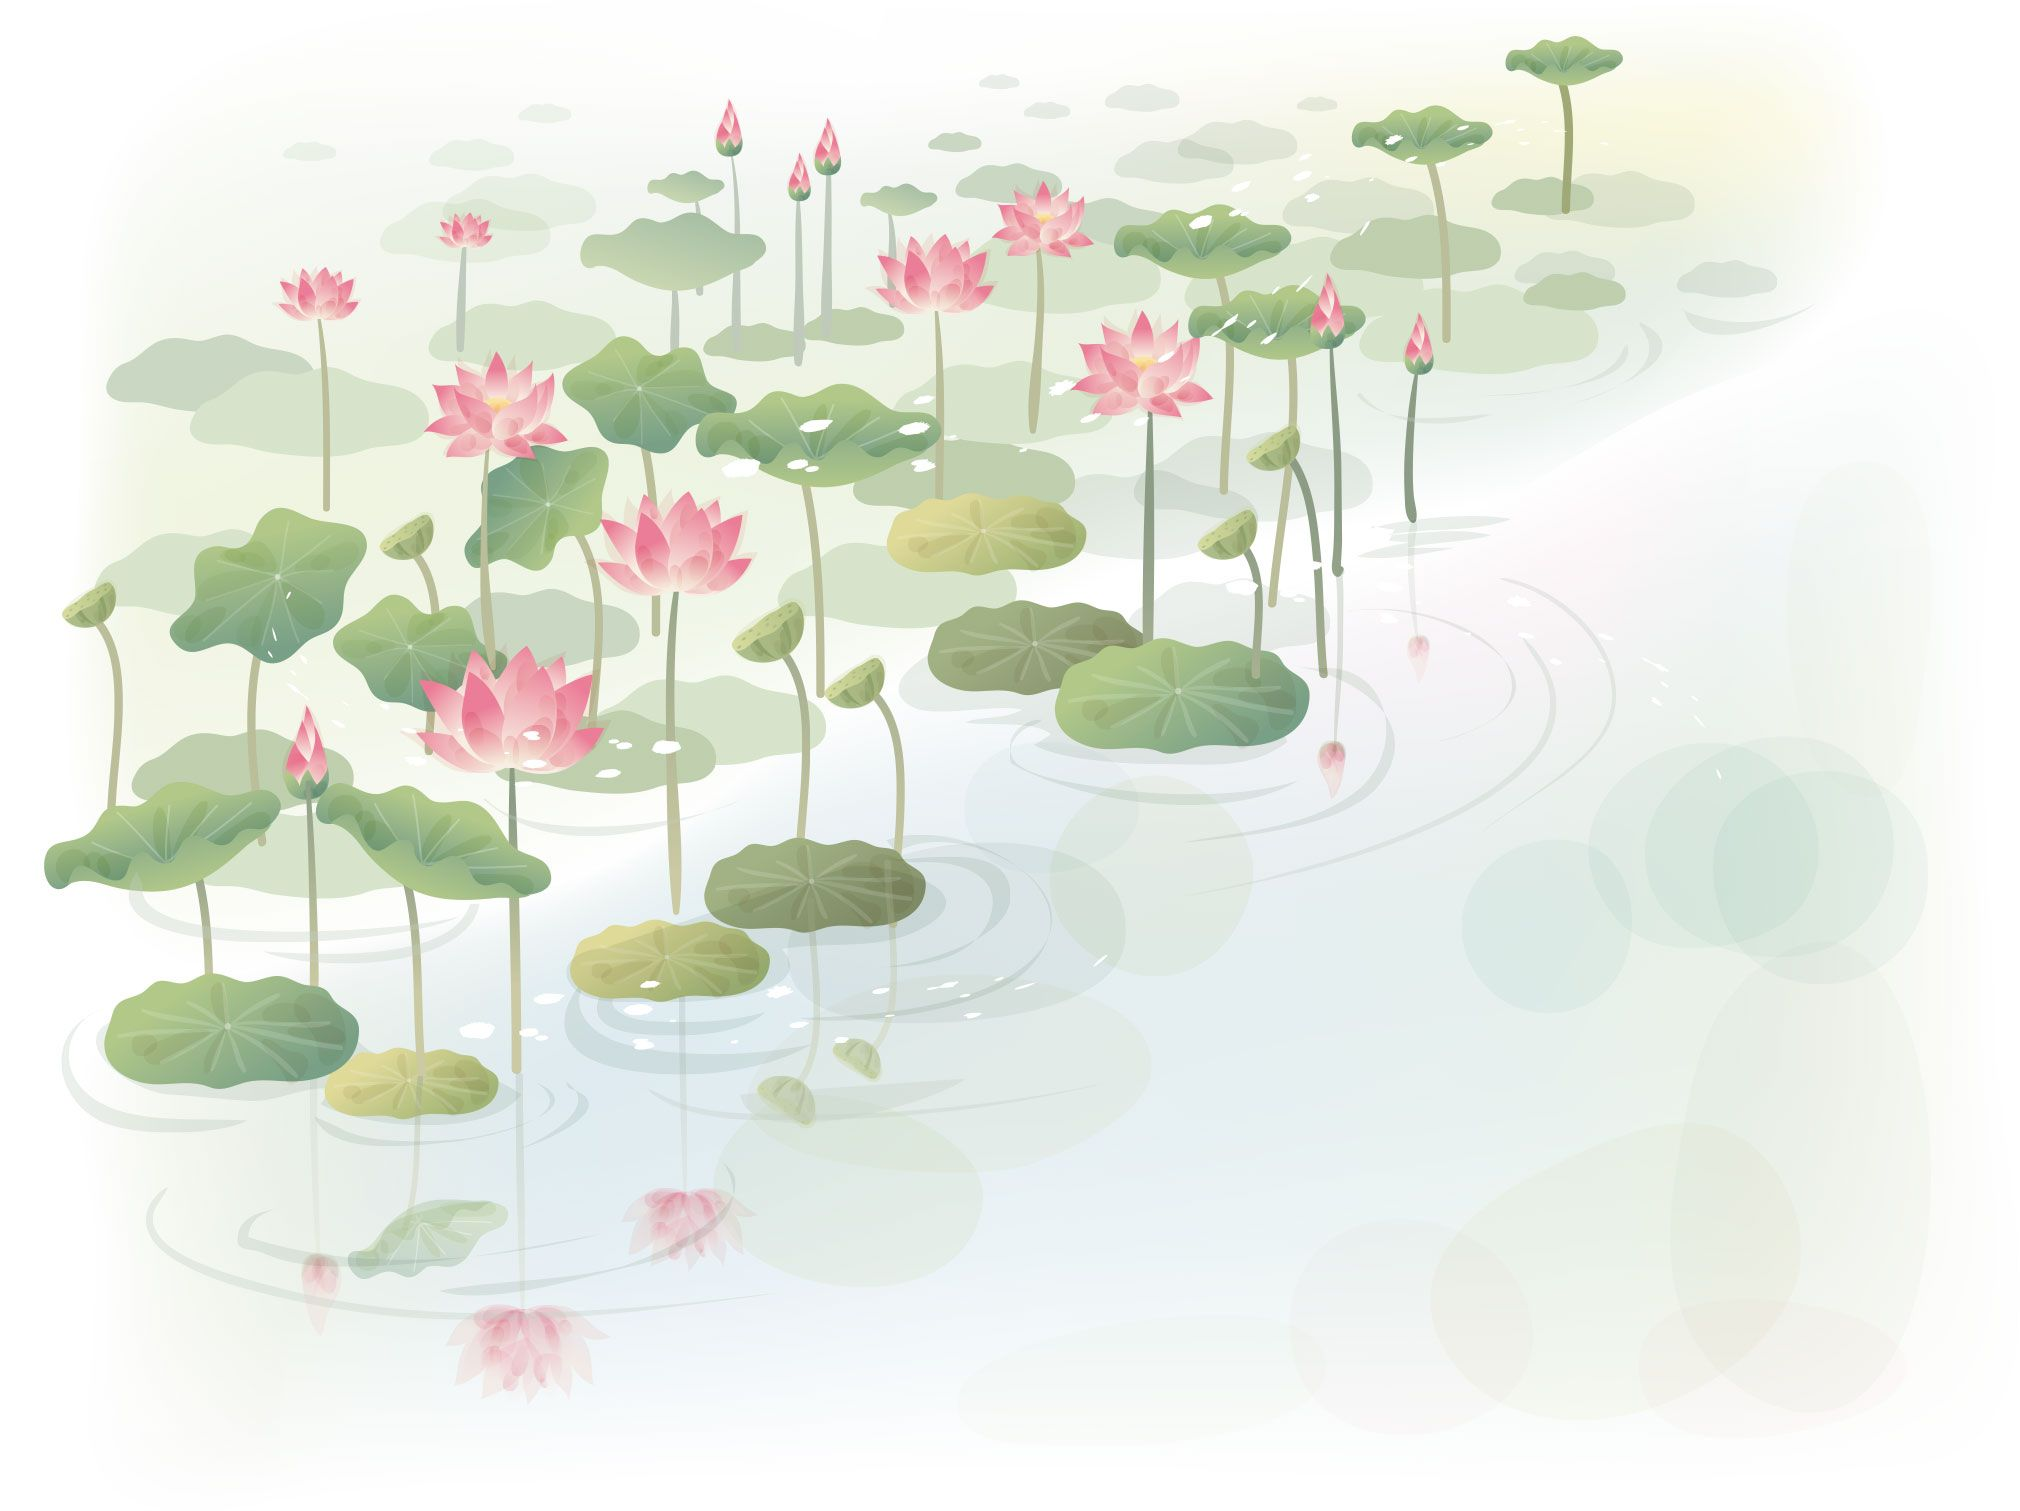 Image Sample Lotus Pond Watercolor Painting Style イラスト 水彩 睡蓮